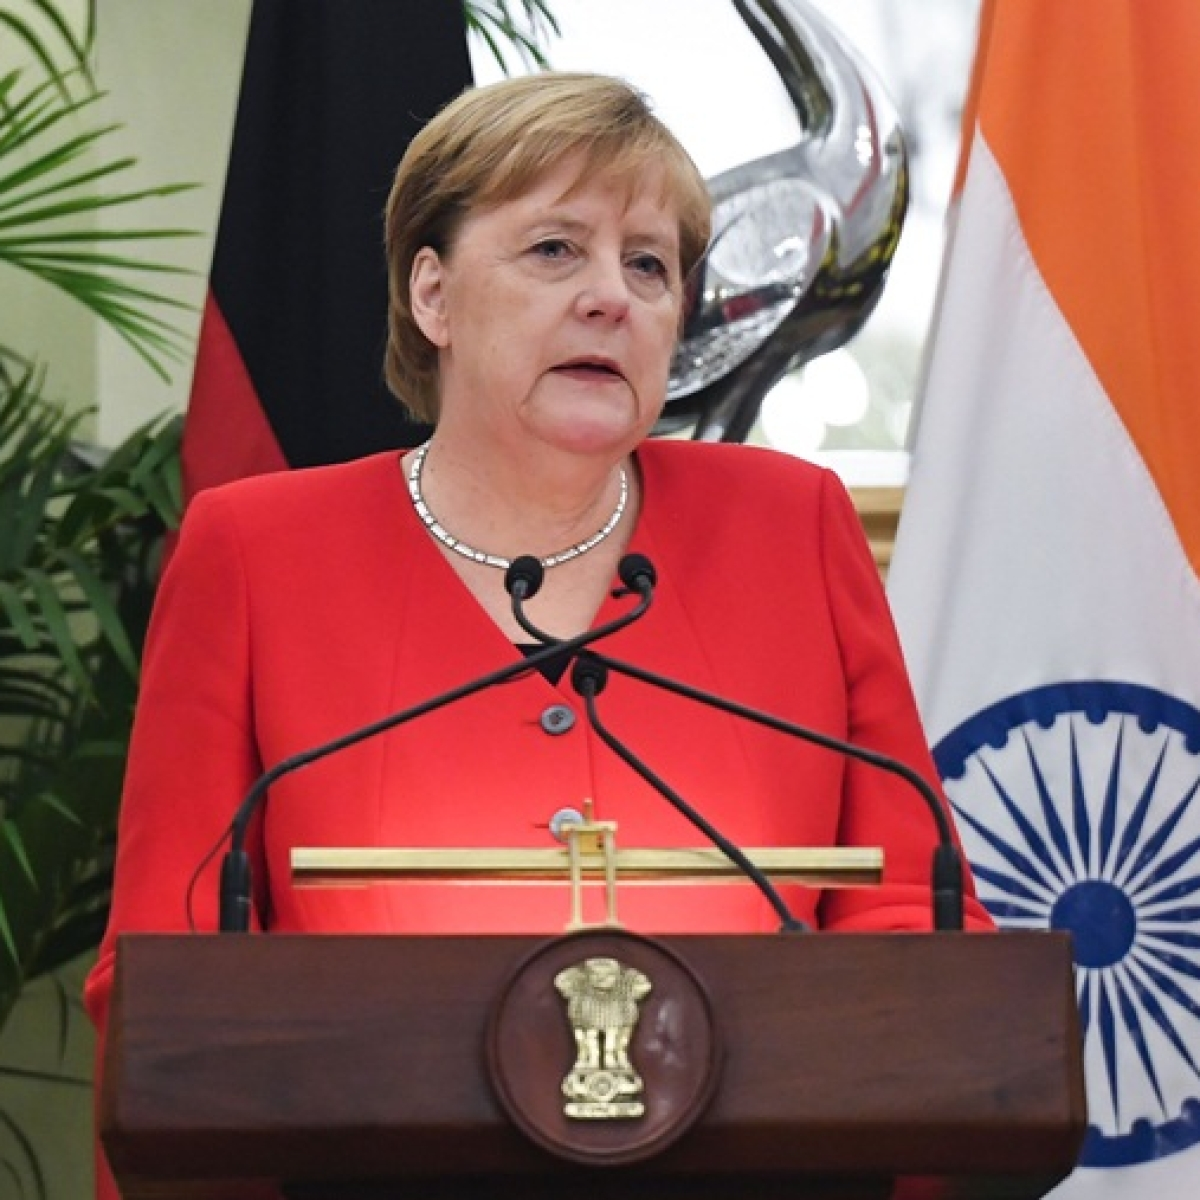 Angela Merkel criticises Modi on Kashmir, says 'situation there is unsustainable, not good'